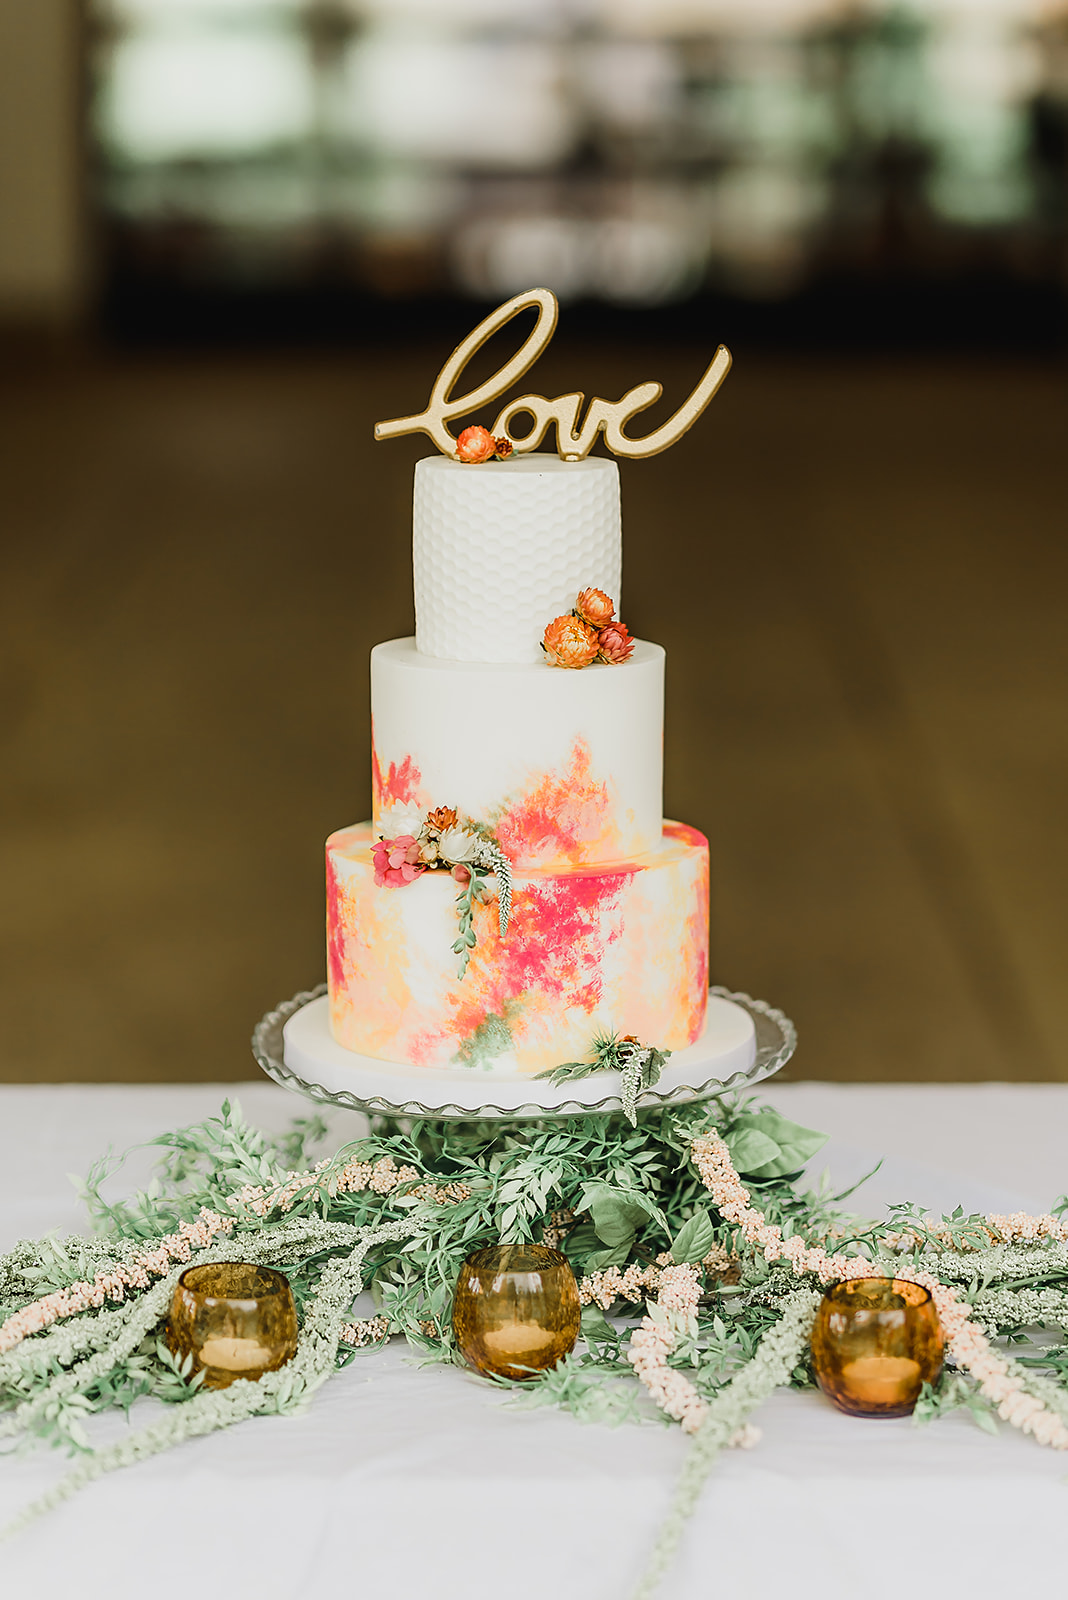 watercolor_honeycomb_stamped_fondant_wedding_ cake_four_oaks_bakery_bespoke_and_beloved_events_pittsburgh_botanic_gardens_summer_wedding